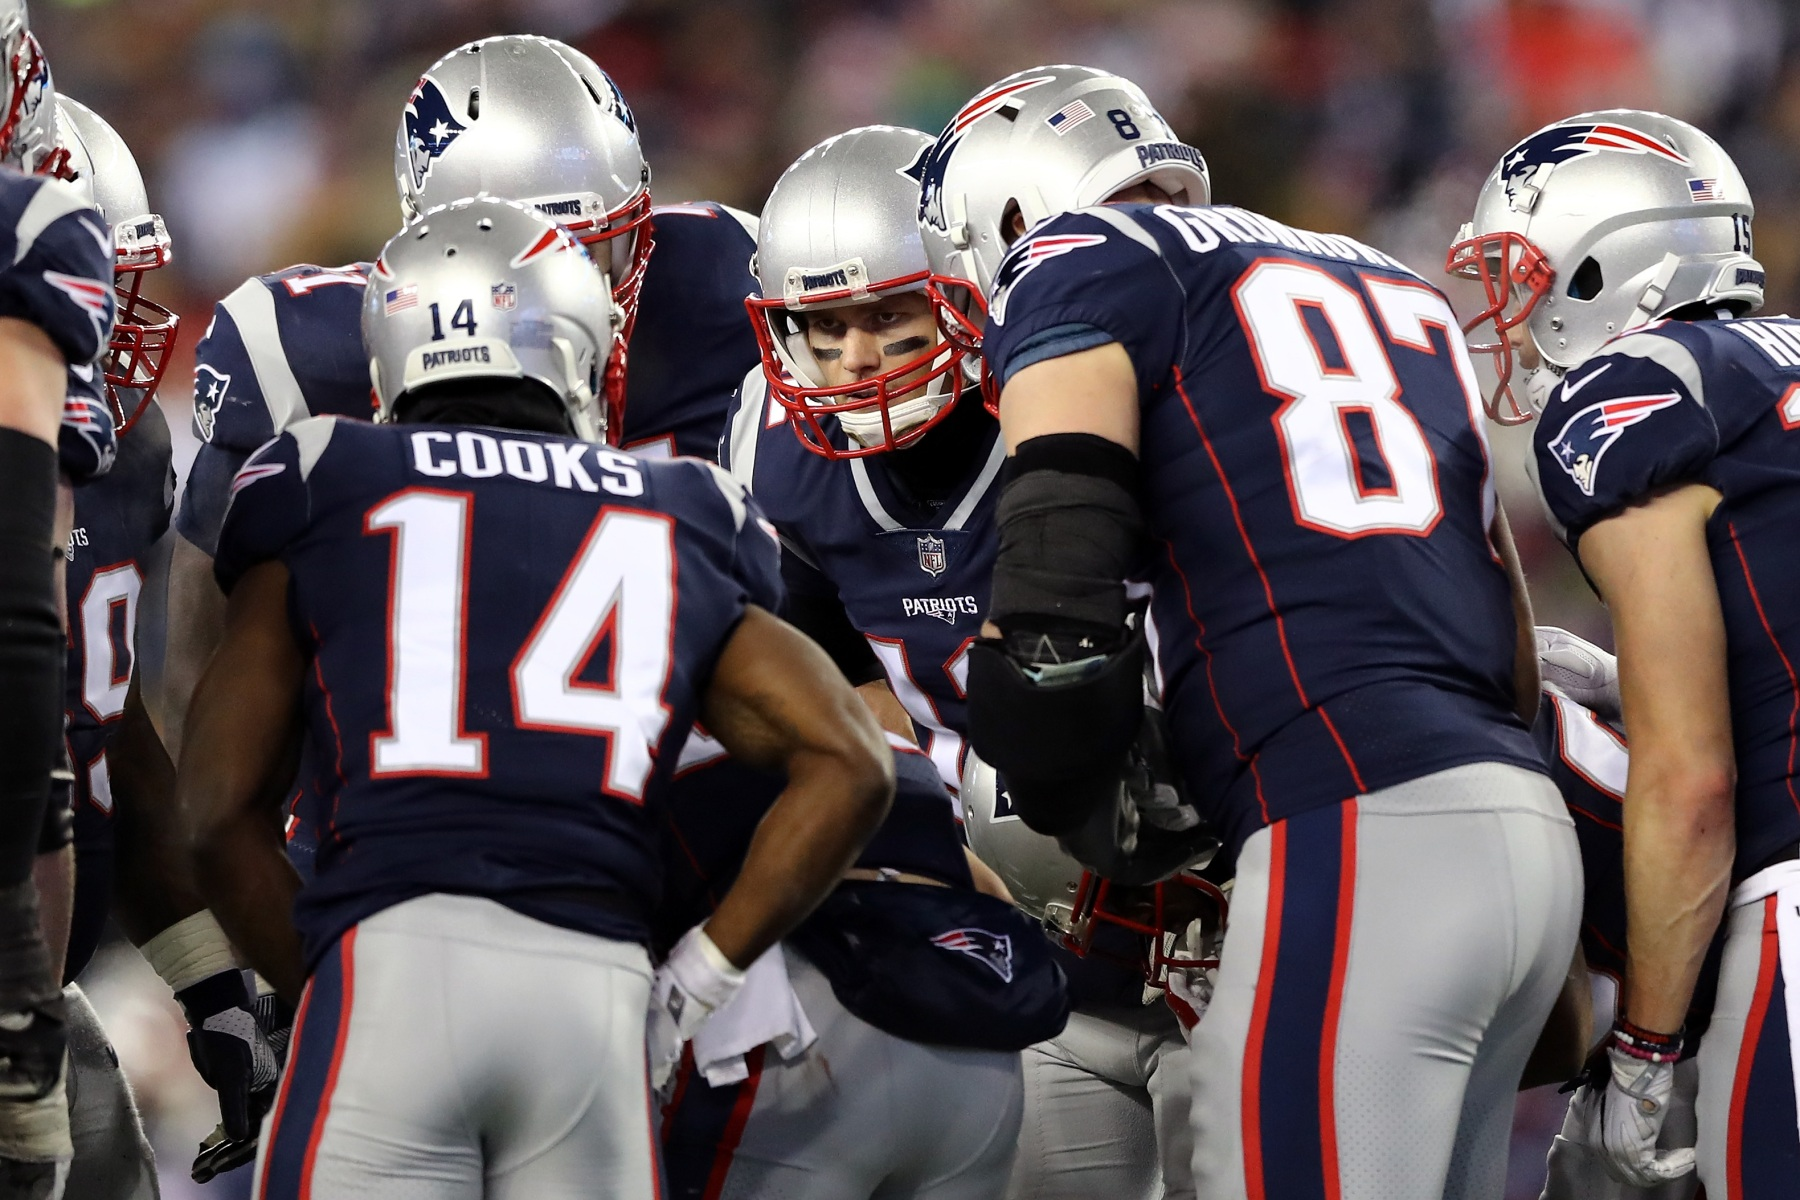 Tom Brady #12 of the New England Patriots reacts in the huddle with Brandin Cooks #14 and Rob Gronkowski #87 during the fourth quarter  in the AFC Divisional Playoff game against the Tennessee Titans at Gillette Stadium on January 13, 2018 in Foxborough, Massachusetts.  (Photo by Elsa/Getty Images)